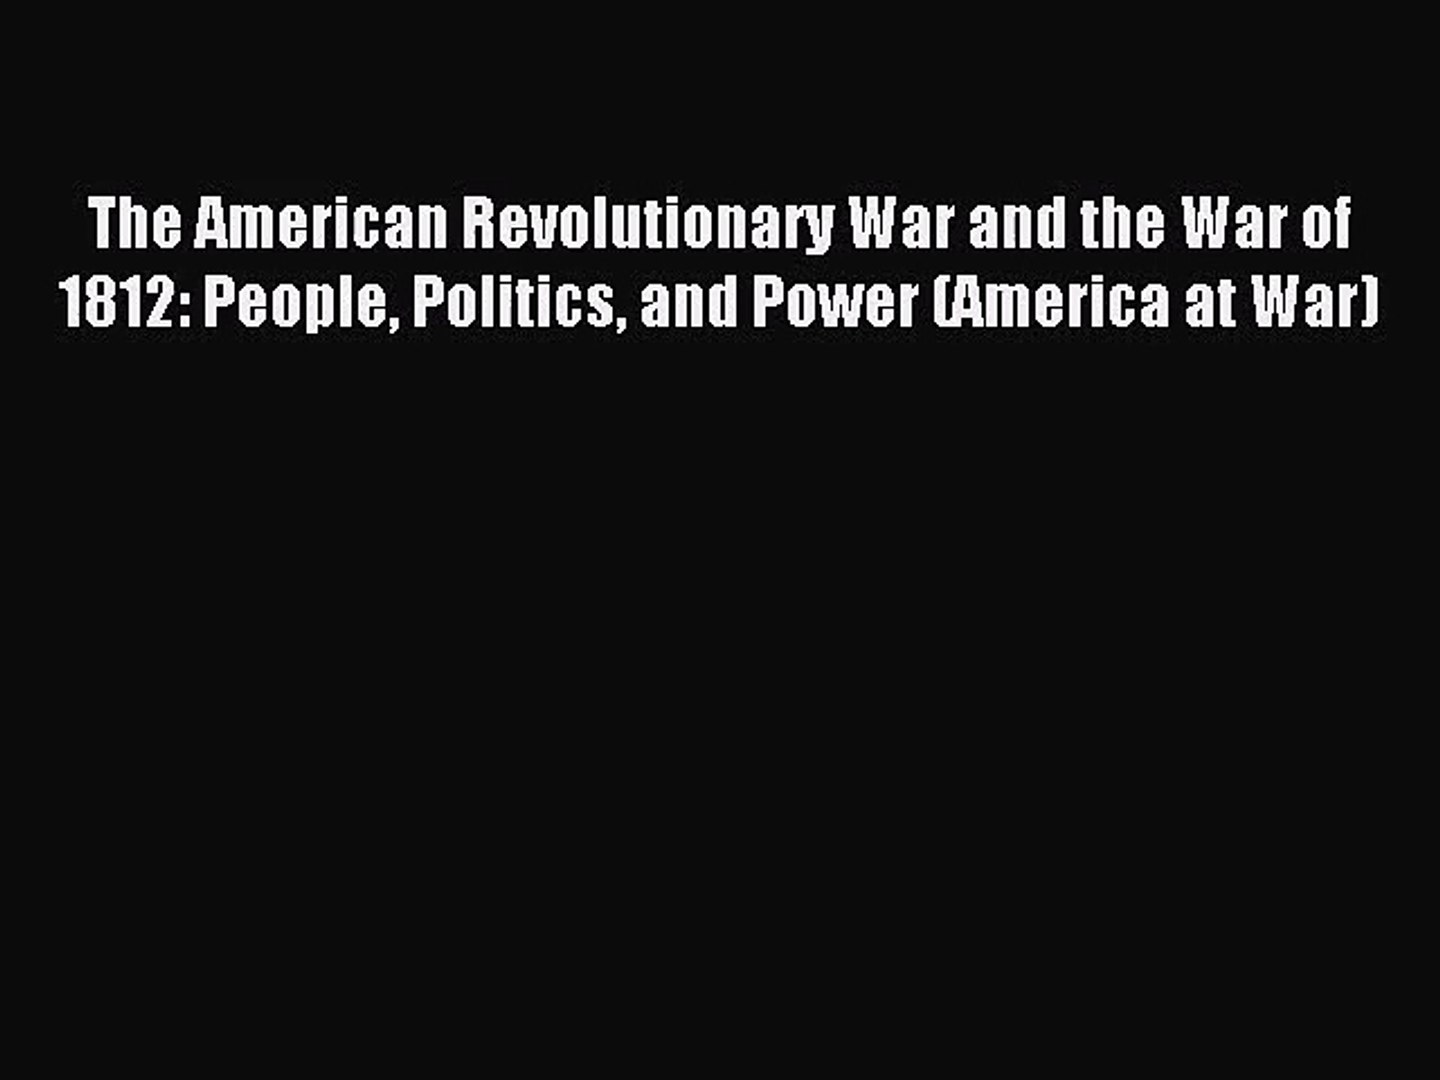 The American Revolutionary War and the War of 1812: People Politics and Power (America at War)